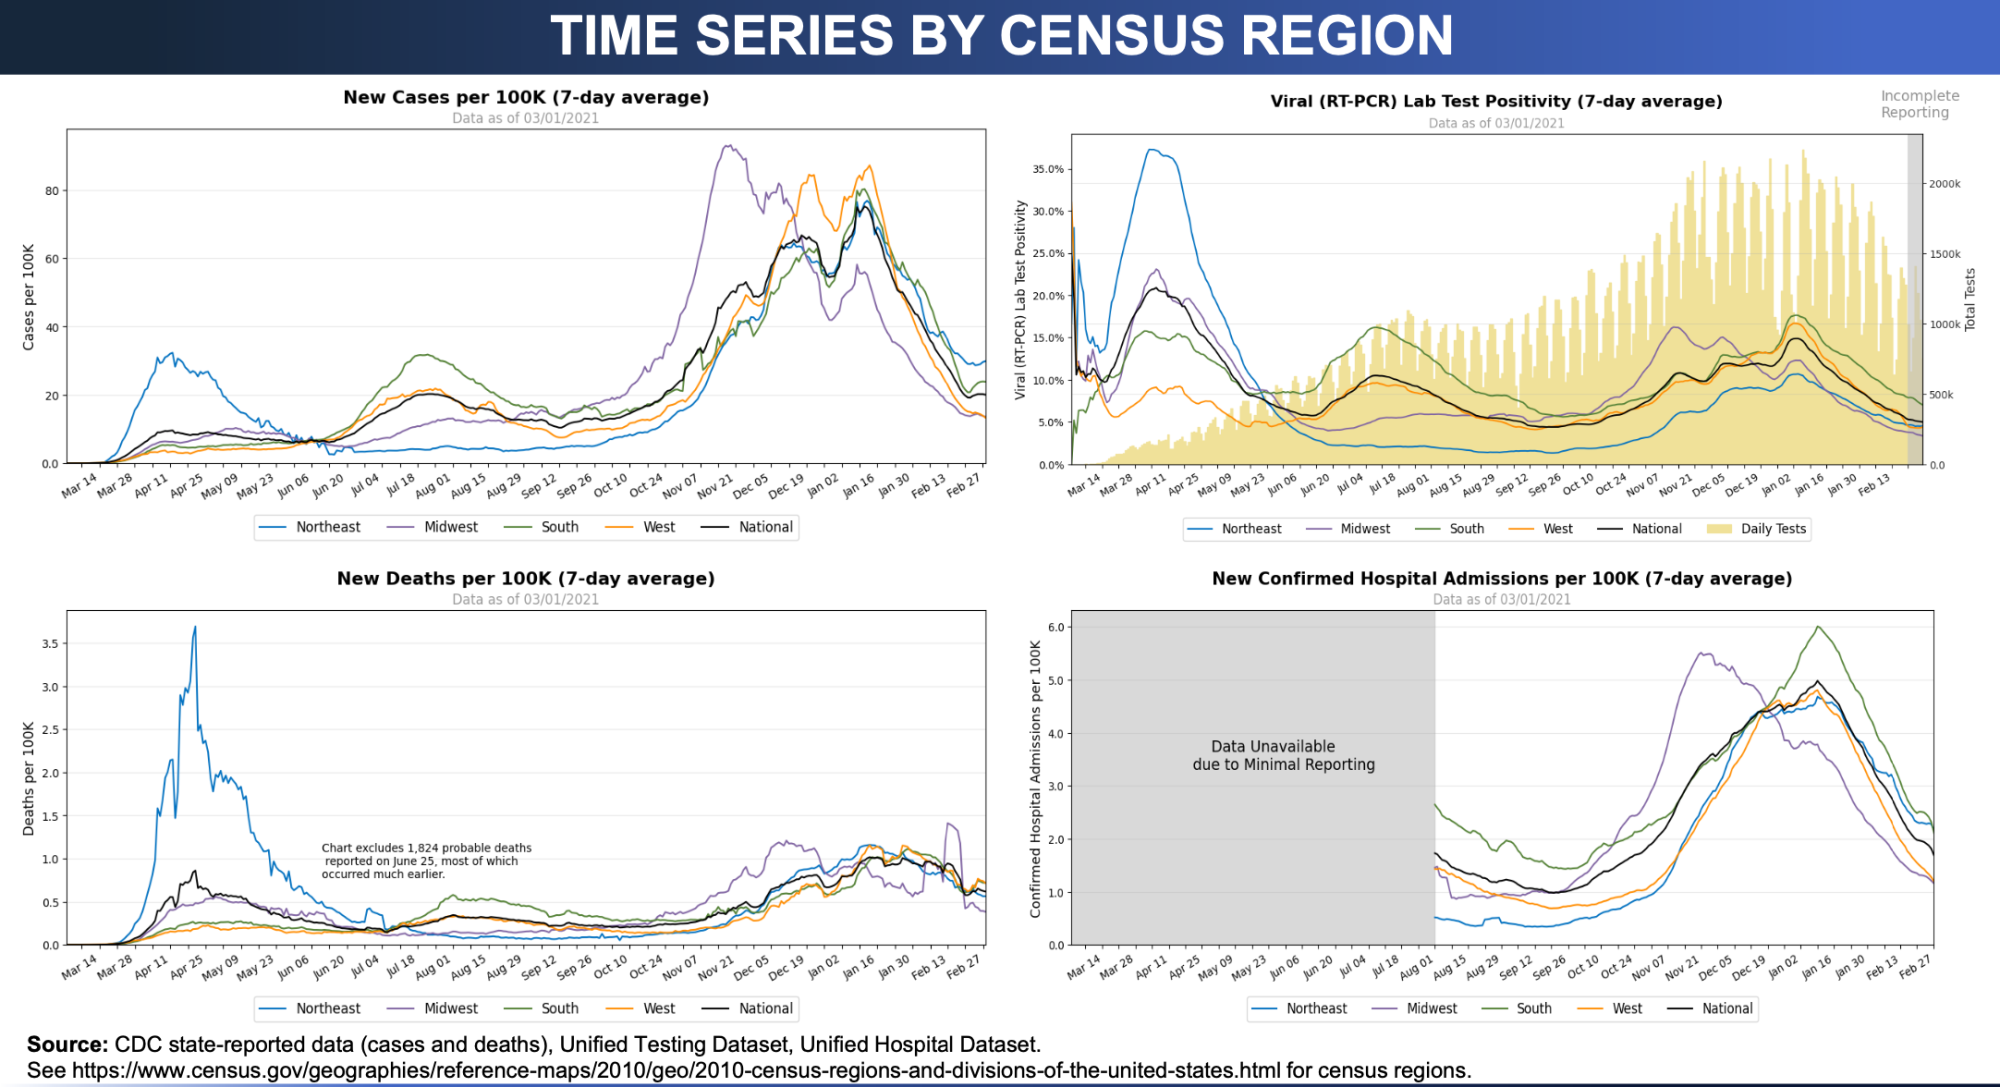 Four-panel data visualization from the federal Community Profile Reports. Each panel is a line graph showing data over time by US Census region for four metrics: new COVID-19 cases per 100,000, test positivity, new deaths per 100,000, and new hospital admissions per 100,000 over time by US Census region.